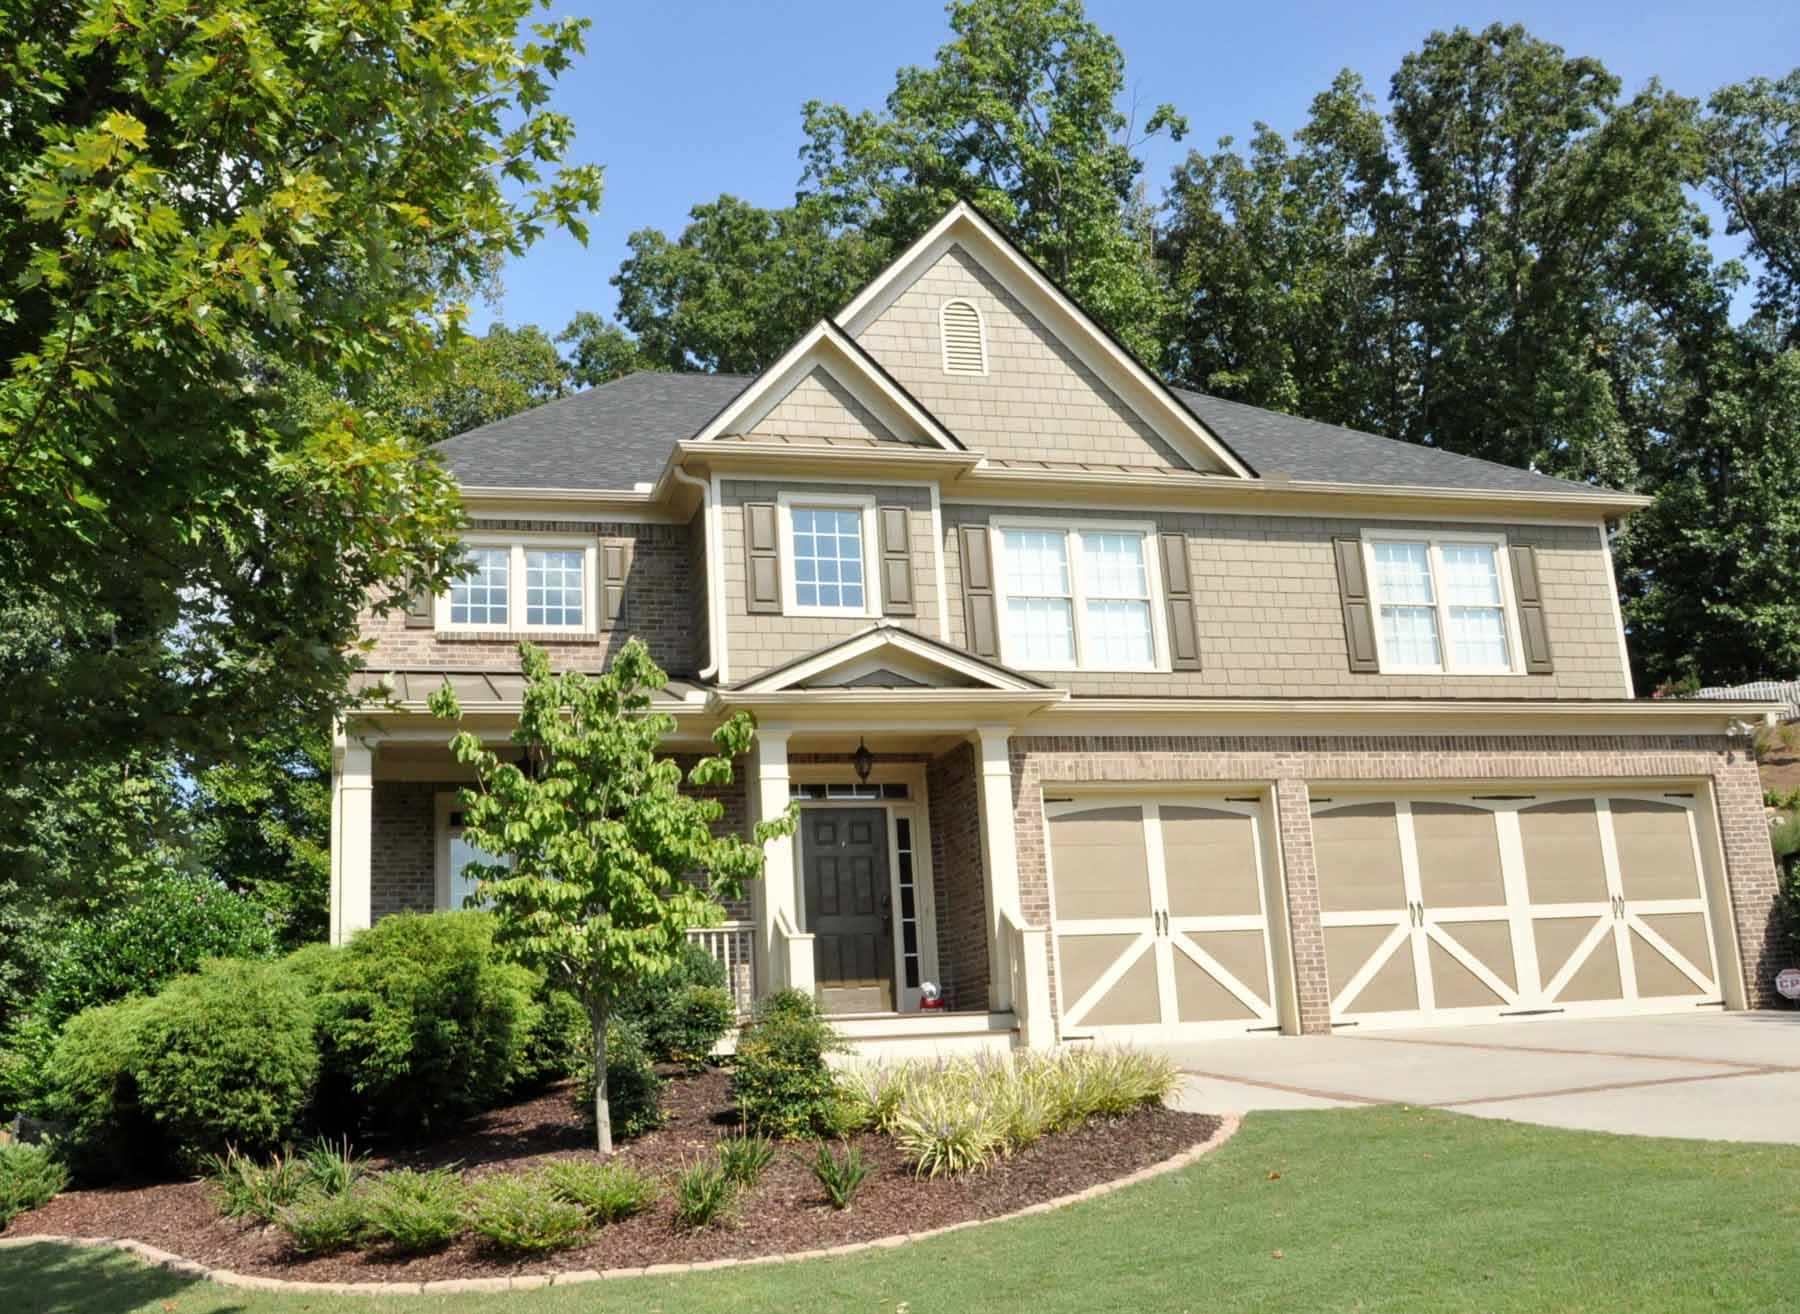 Single Family Home for Sale at Provence in South Forsyth 2710 Monet Drive Cumming, Georgia, 30041 United States